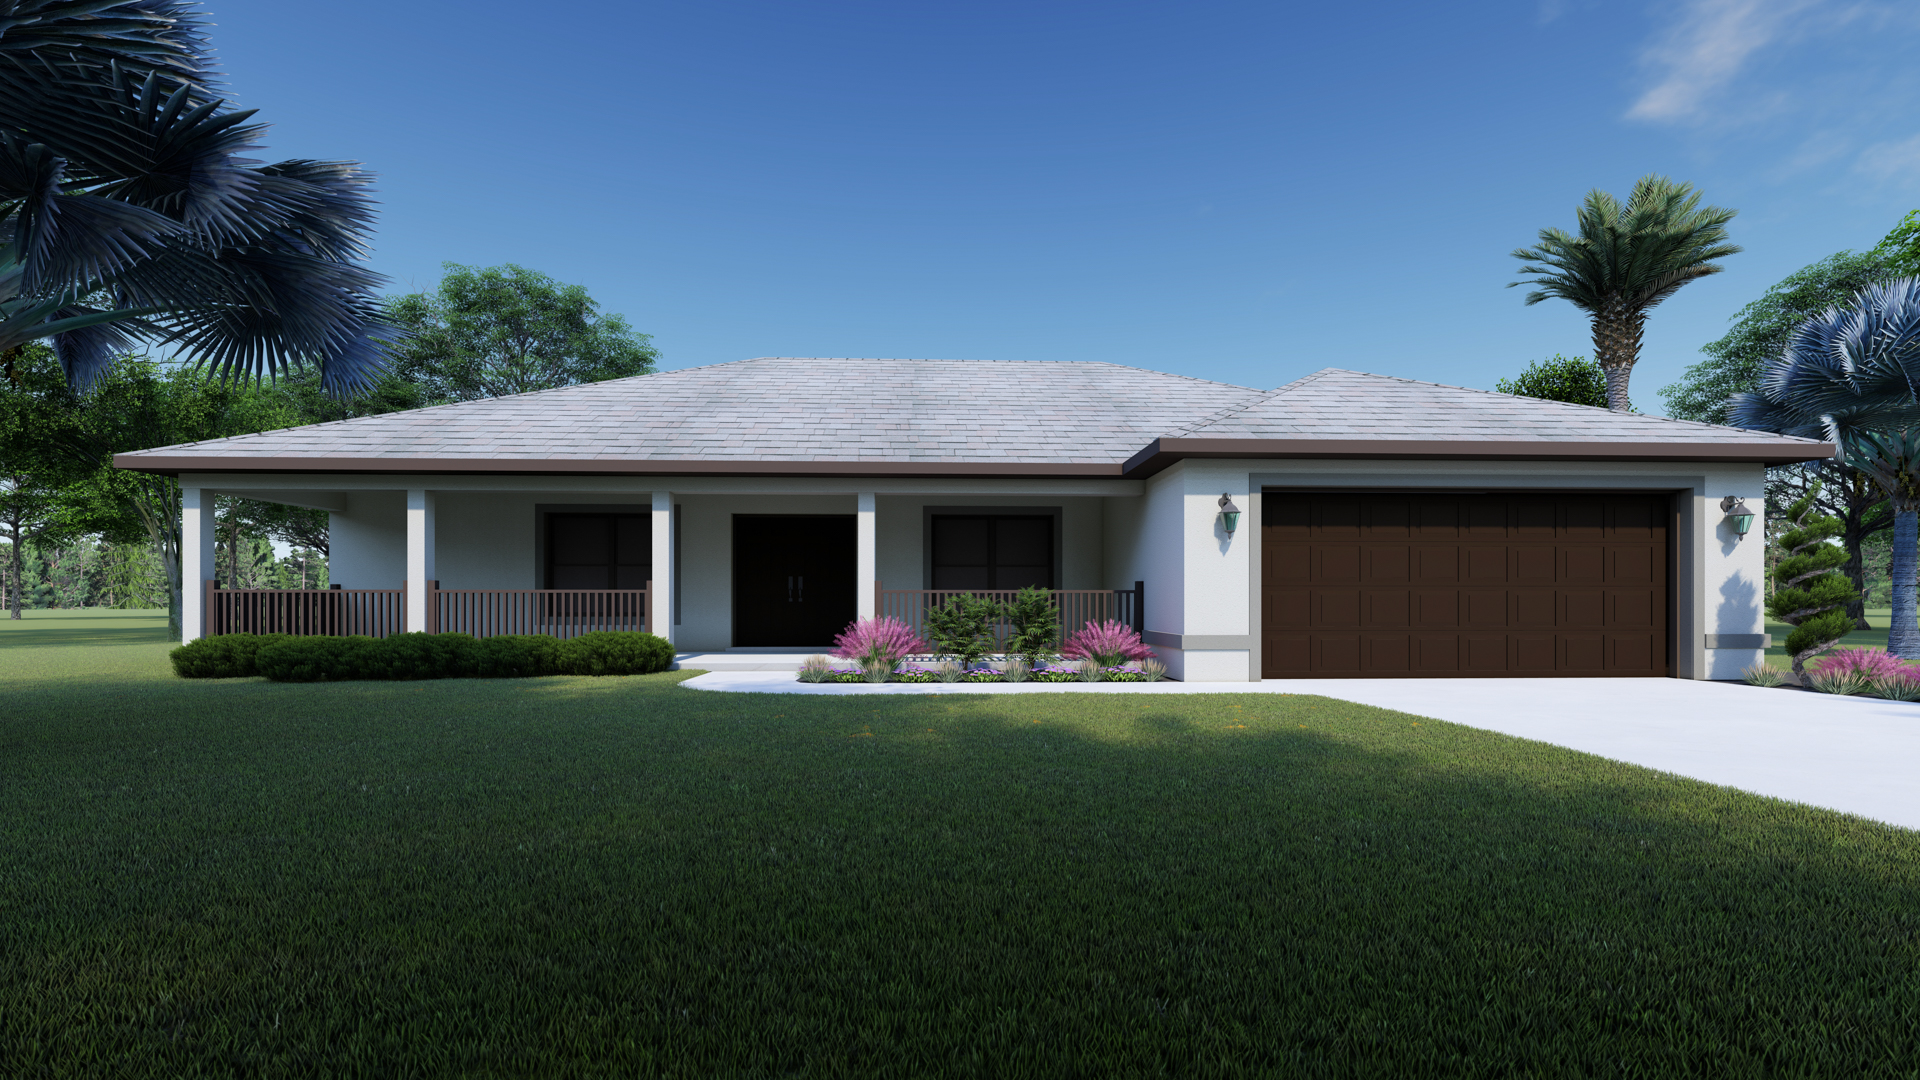 The Cottrell Front Porch Home Plan